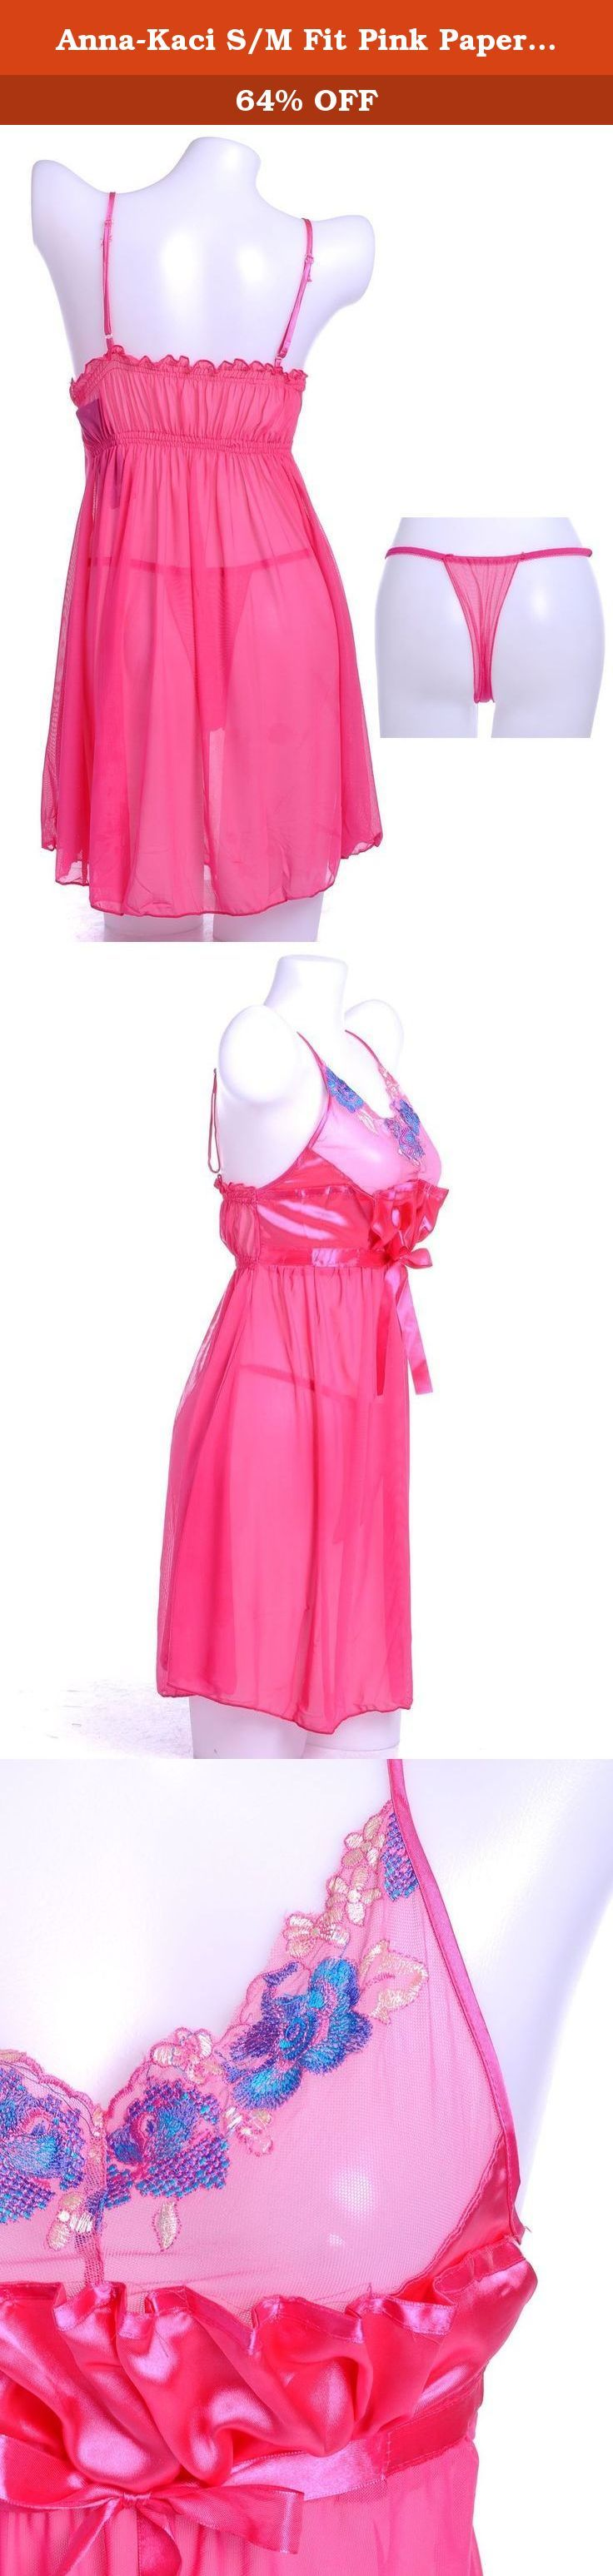 """Anna-Kaci S/M Fit Pink Paper Bag Gathered Front Blue Floral Appliques Negligee. Look like a sweet cupcake with this pink negligee. This negligee features ribbon bow front, blue floral appliques and paper bag gathered front. Comes with a matching g-string. DETAILS: - SMALL/MEDIUM FIT - BUST: 22-30"""" - WAIST: 24-38"""" - BODY LENGTH: 28""""."""